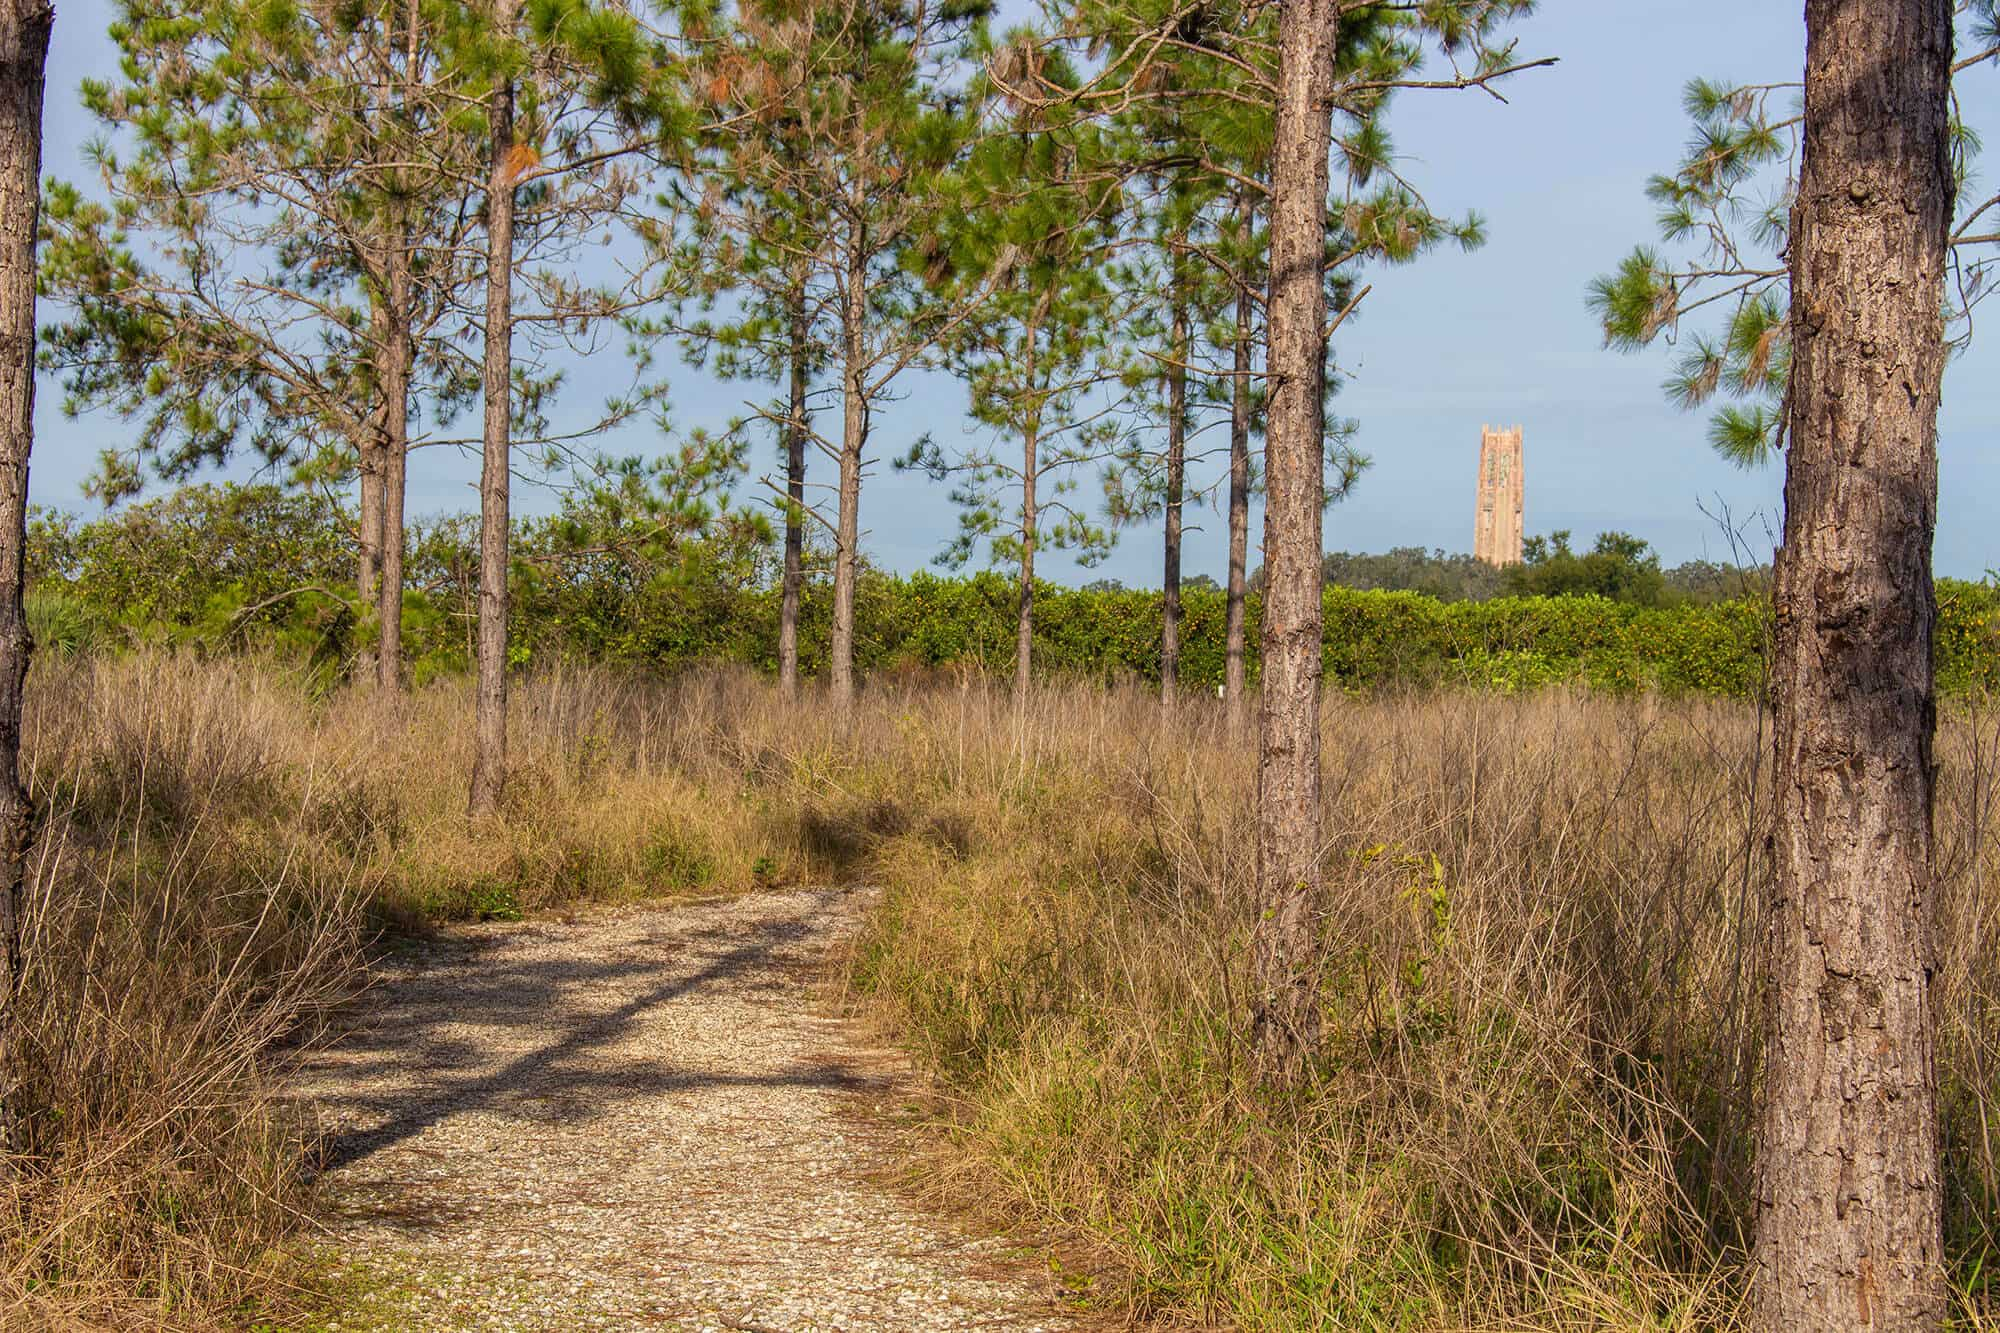 Nature trail through scrub and trees at Pine Ridge Nature Preserve. Carillon Tower in the distance at Bok Tower Gardens in Lake Wales, FL